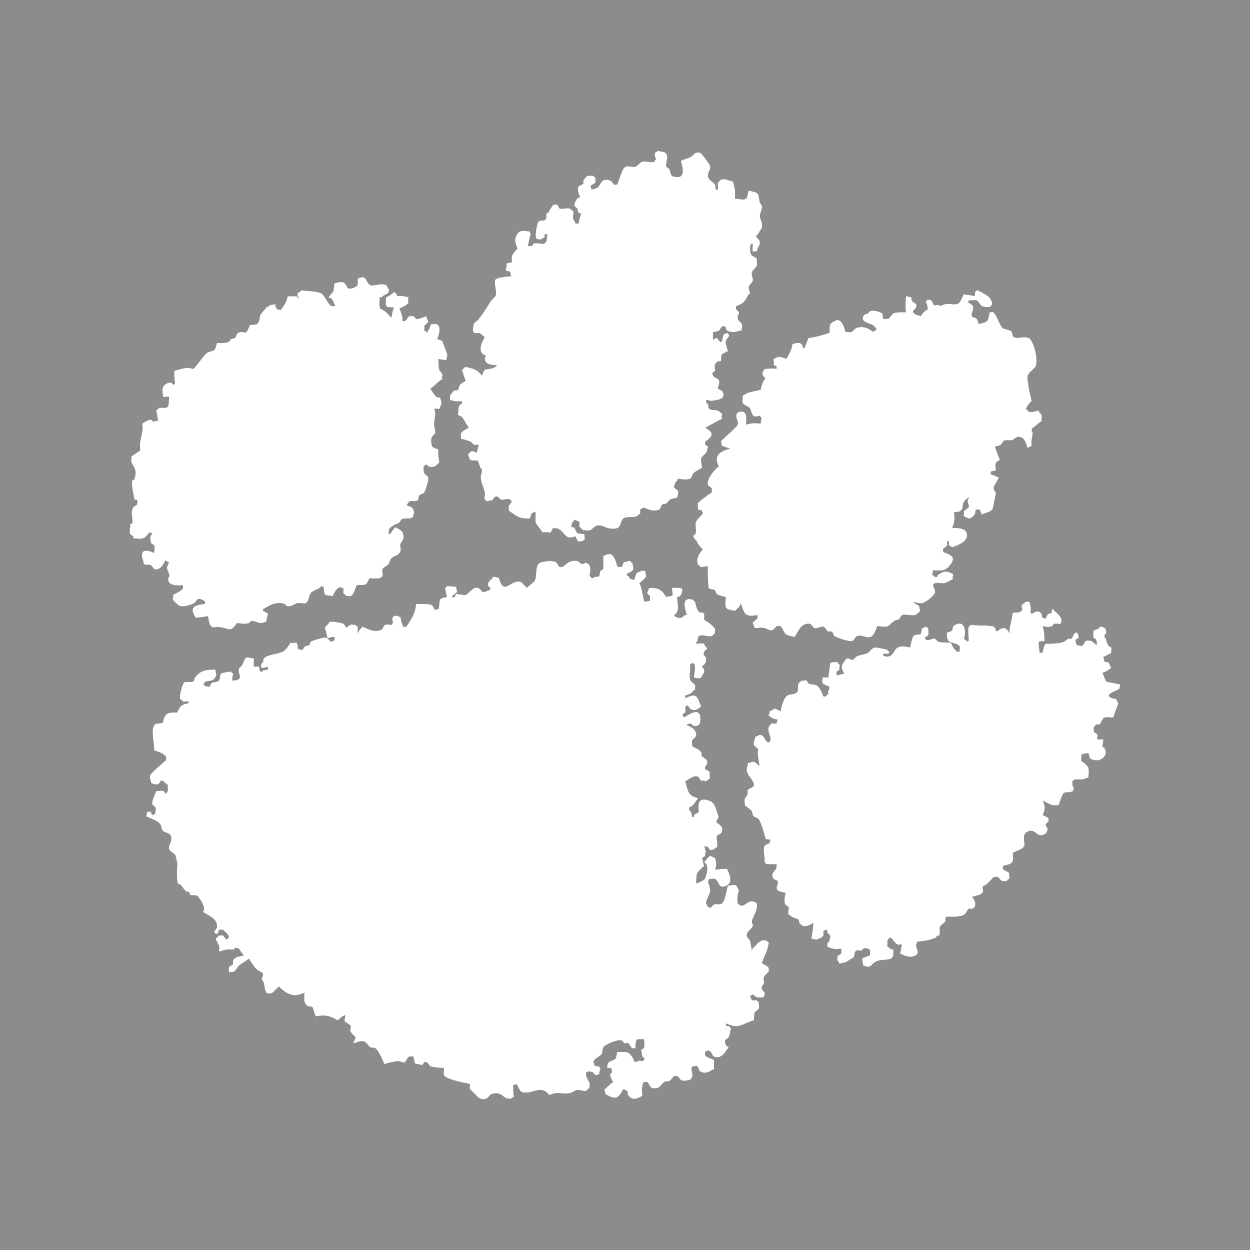 Clemson Paw Print Png – Tiger paw png is about is about clemson university, clemson tigers football, tiger, clemson tigers womens basketball, clemson university tiger band.